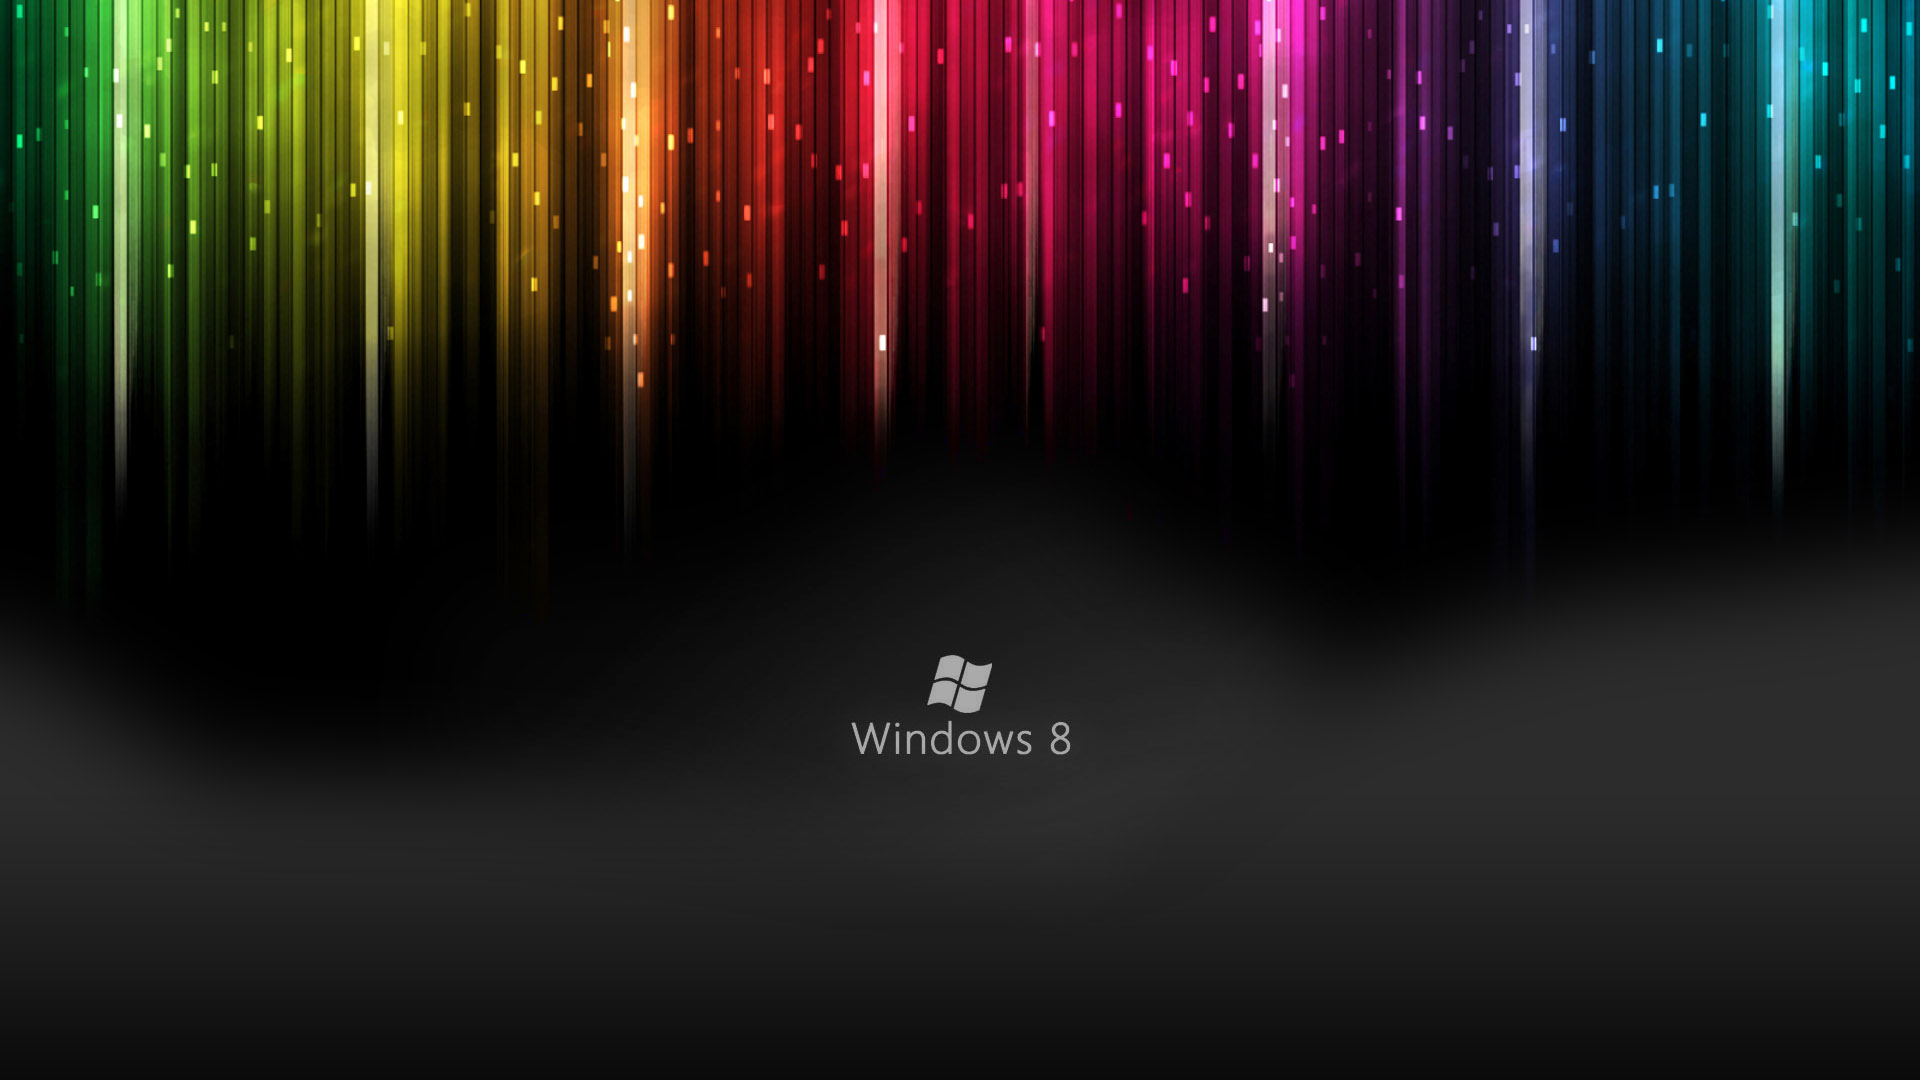 3D Live Wallpaper Windows 8 1920x1080